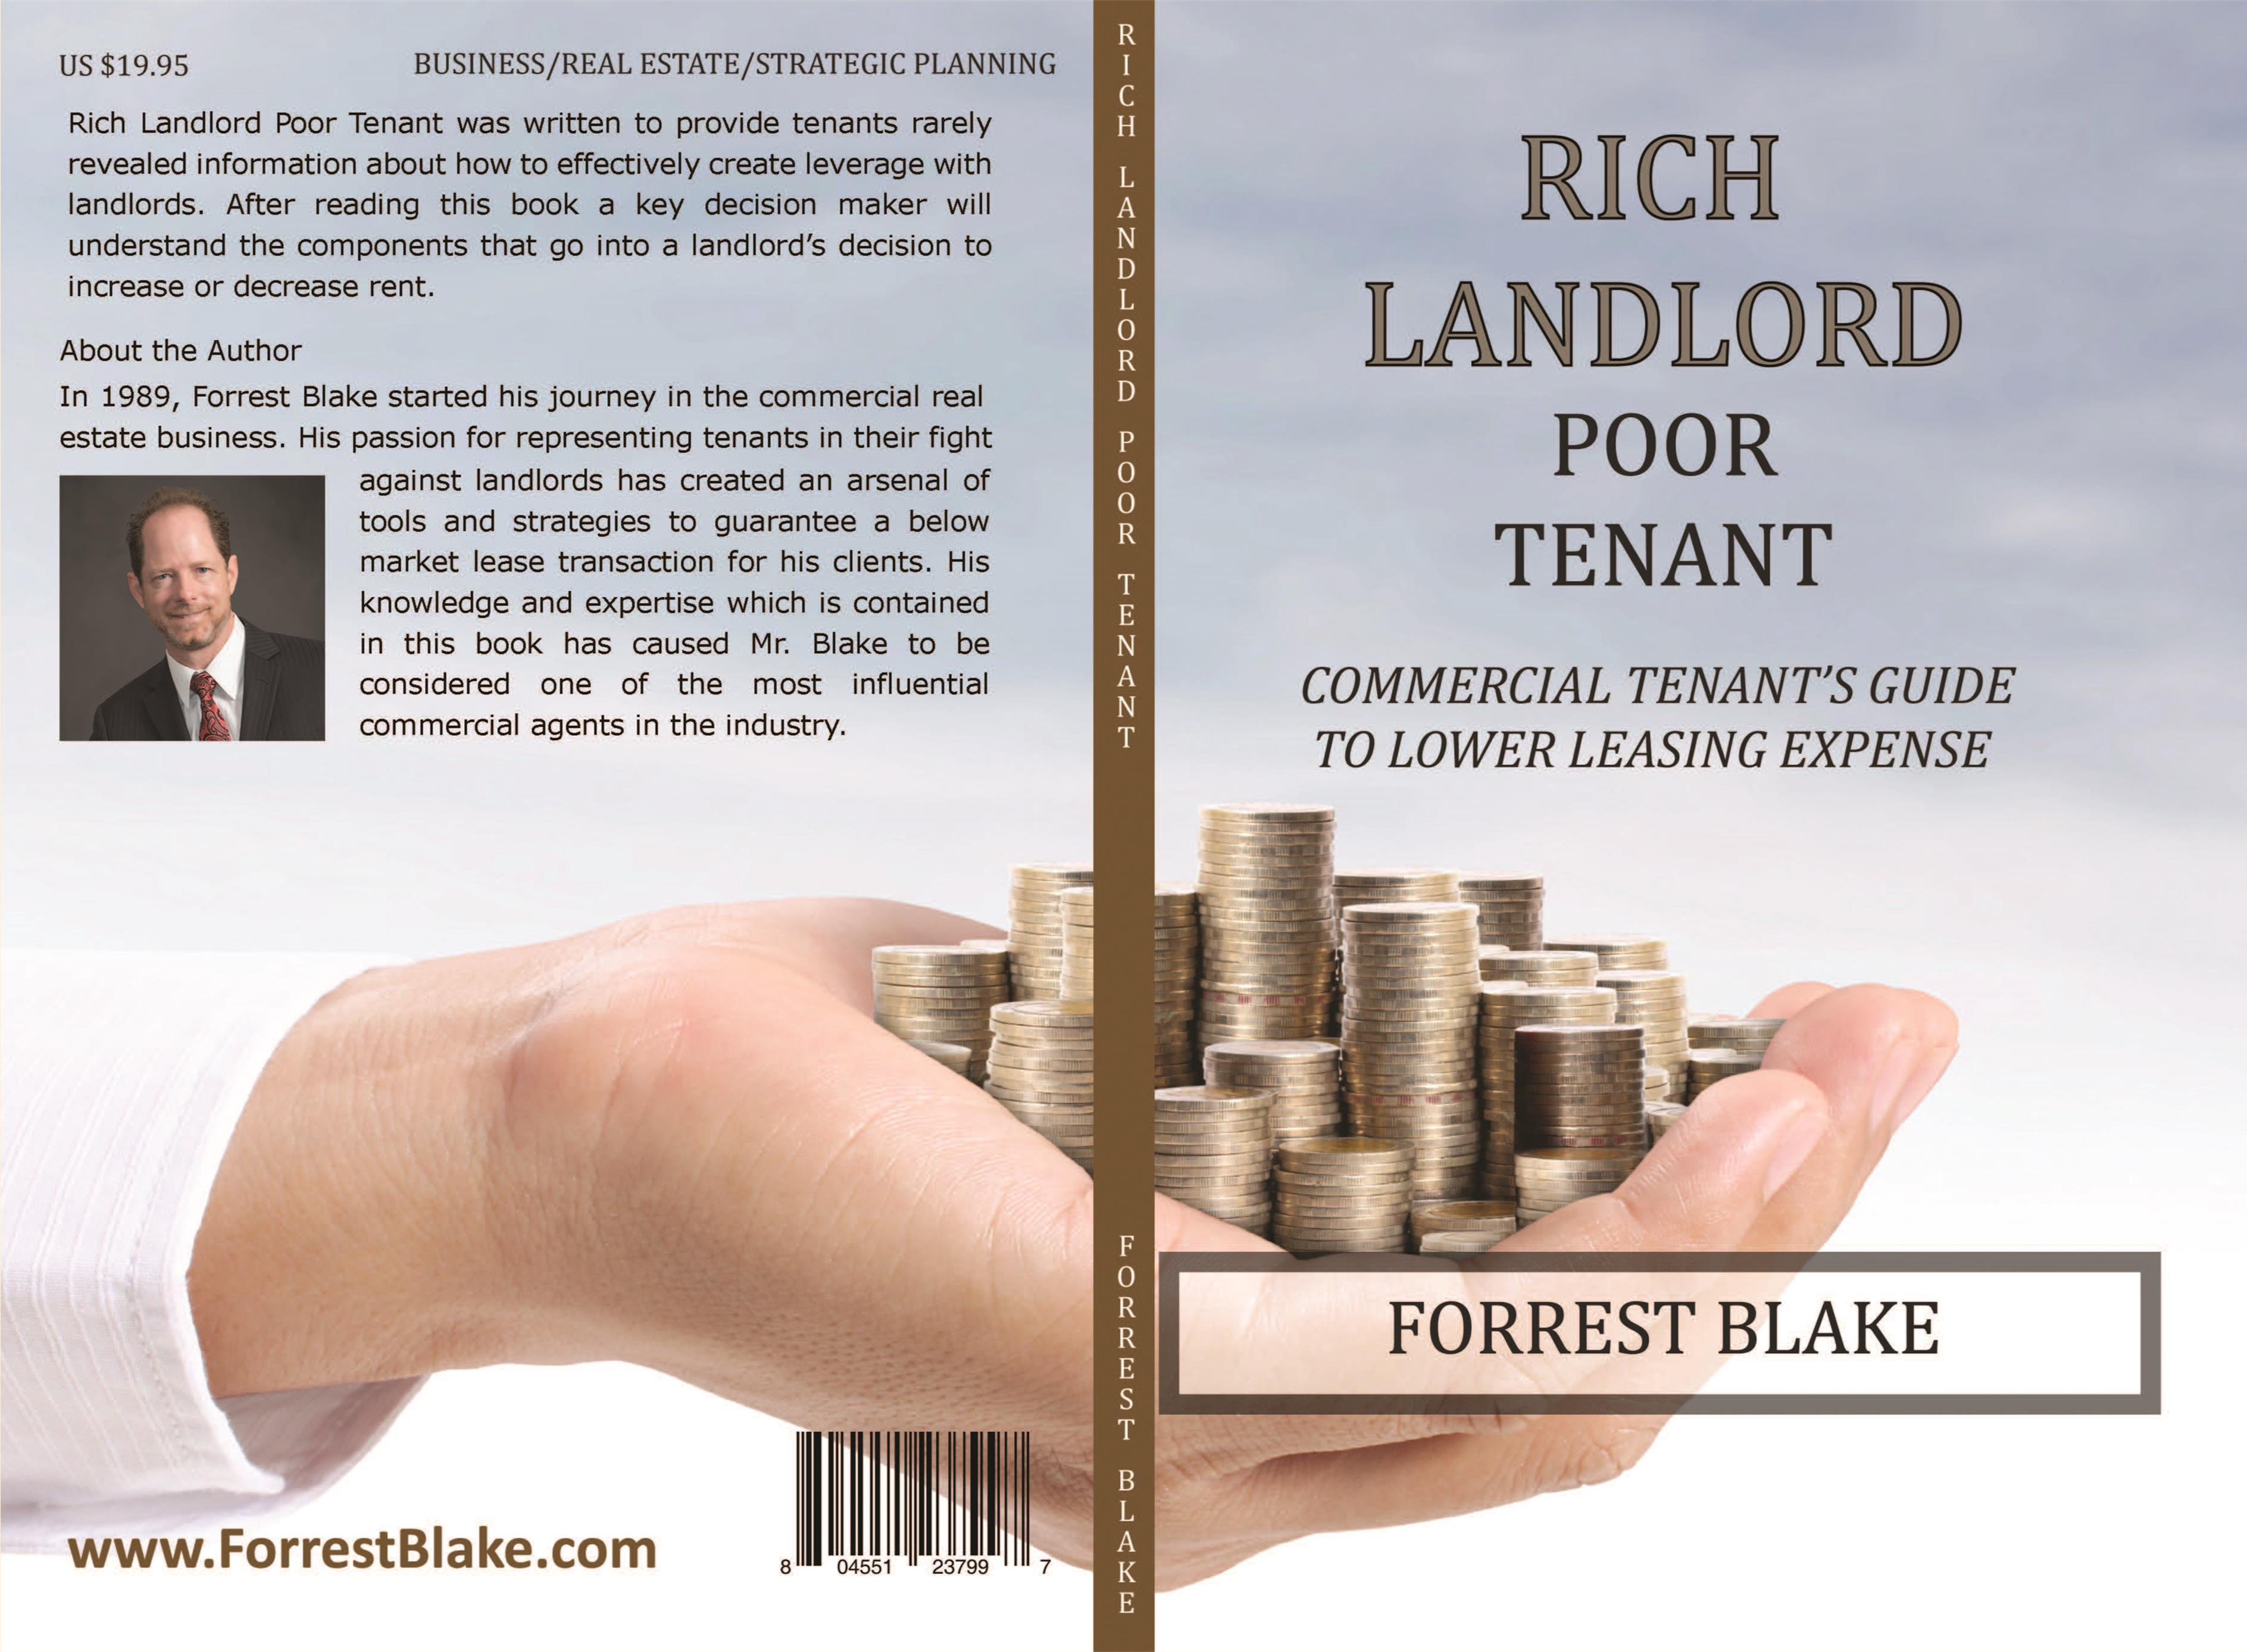 Rich Landlord Poor Tenant cover image